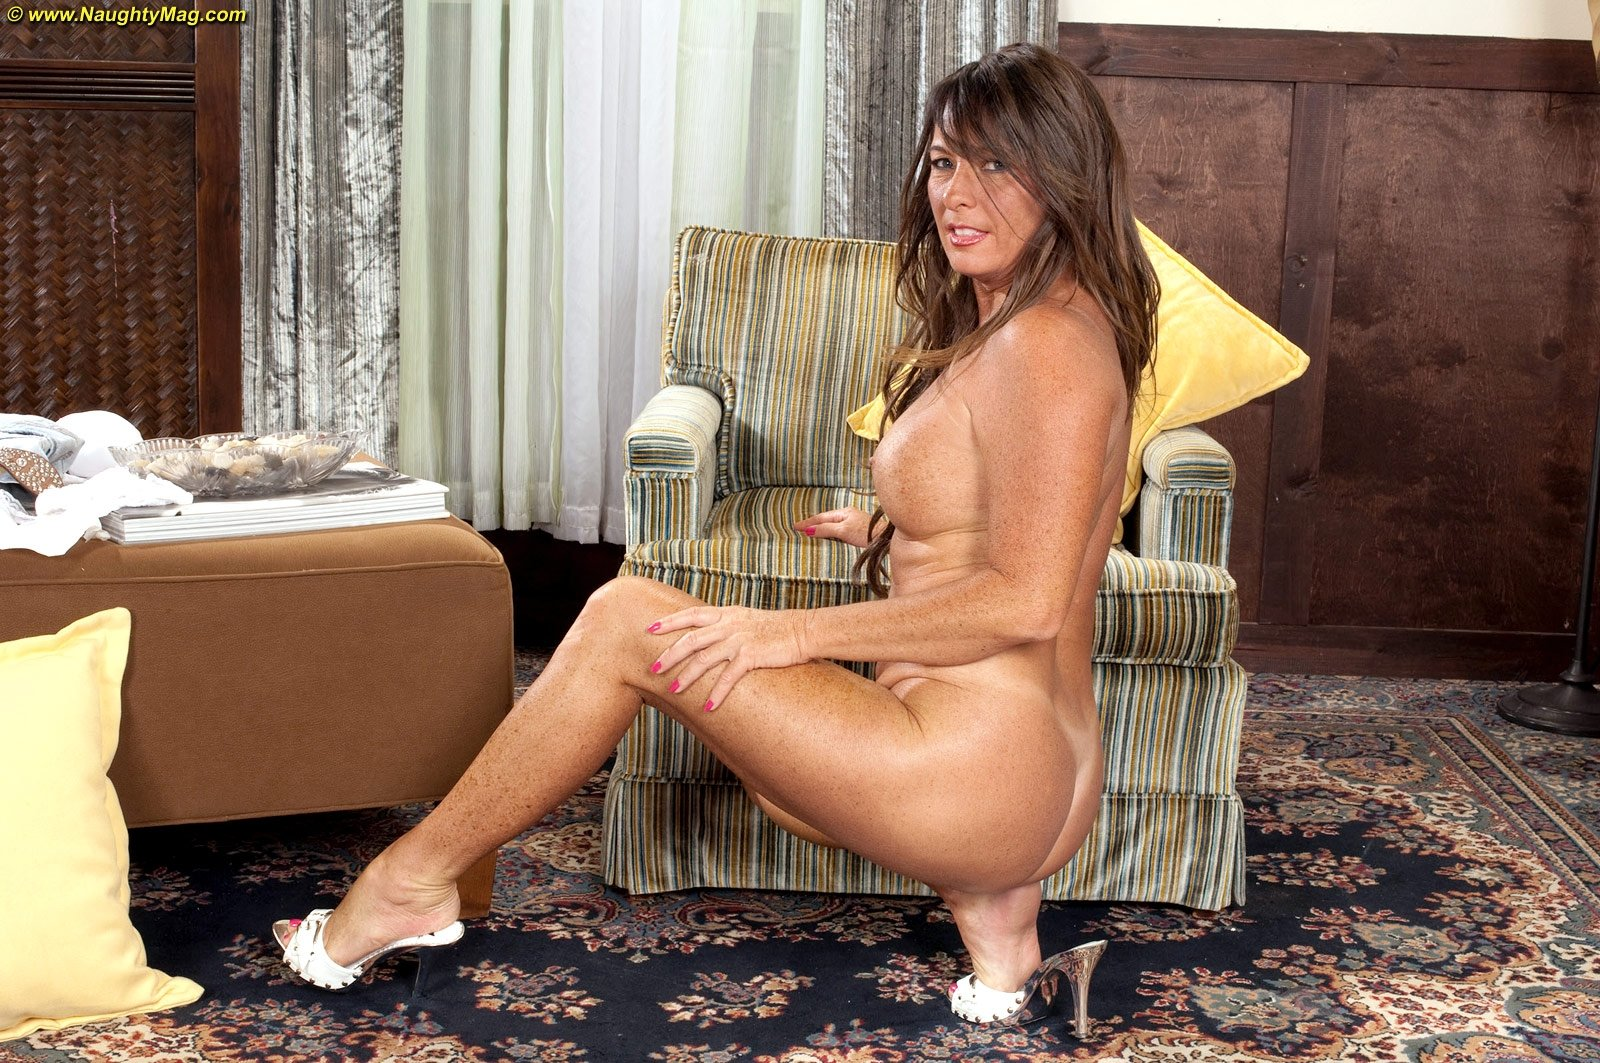 Cams online adult